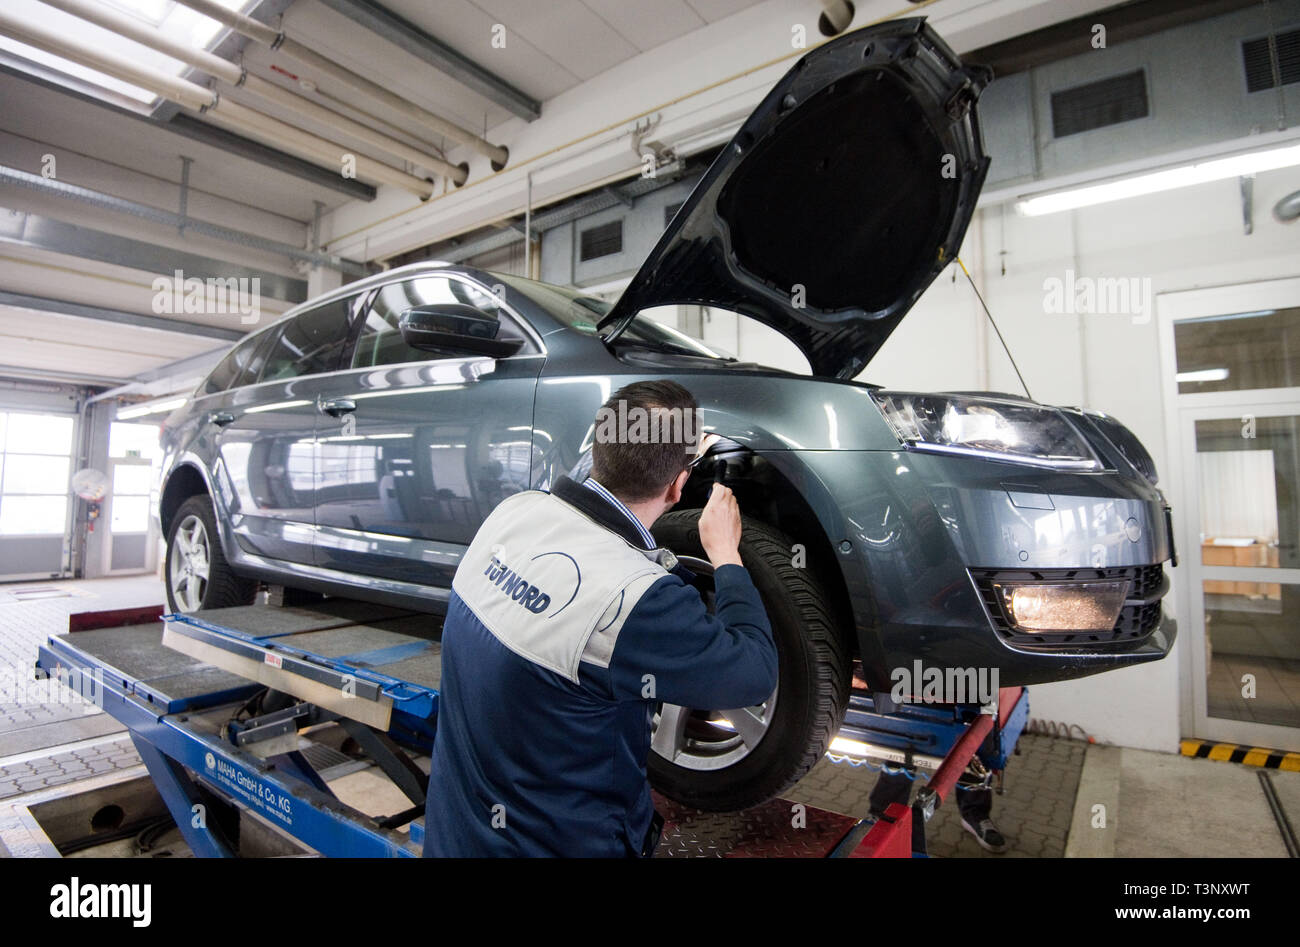 Hannover, Germany. 10th Apr, 2019. An employee from TÜV Nord inspects the shock absorbers of a Skoda Octavia with a TDI diesel engine as part of a HU general inspection. On 11 April 2019, those responsible at TÜV Nord will present the balance sheet report for the past financial year. Credit: Julian Stratenschulte/dpa/Alamy Live News - Stock Image